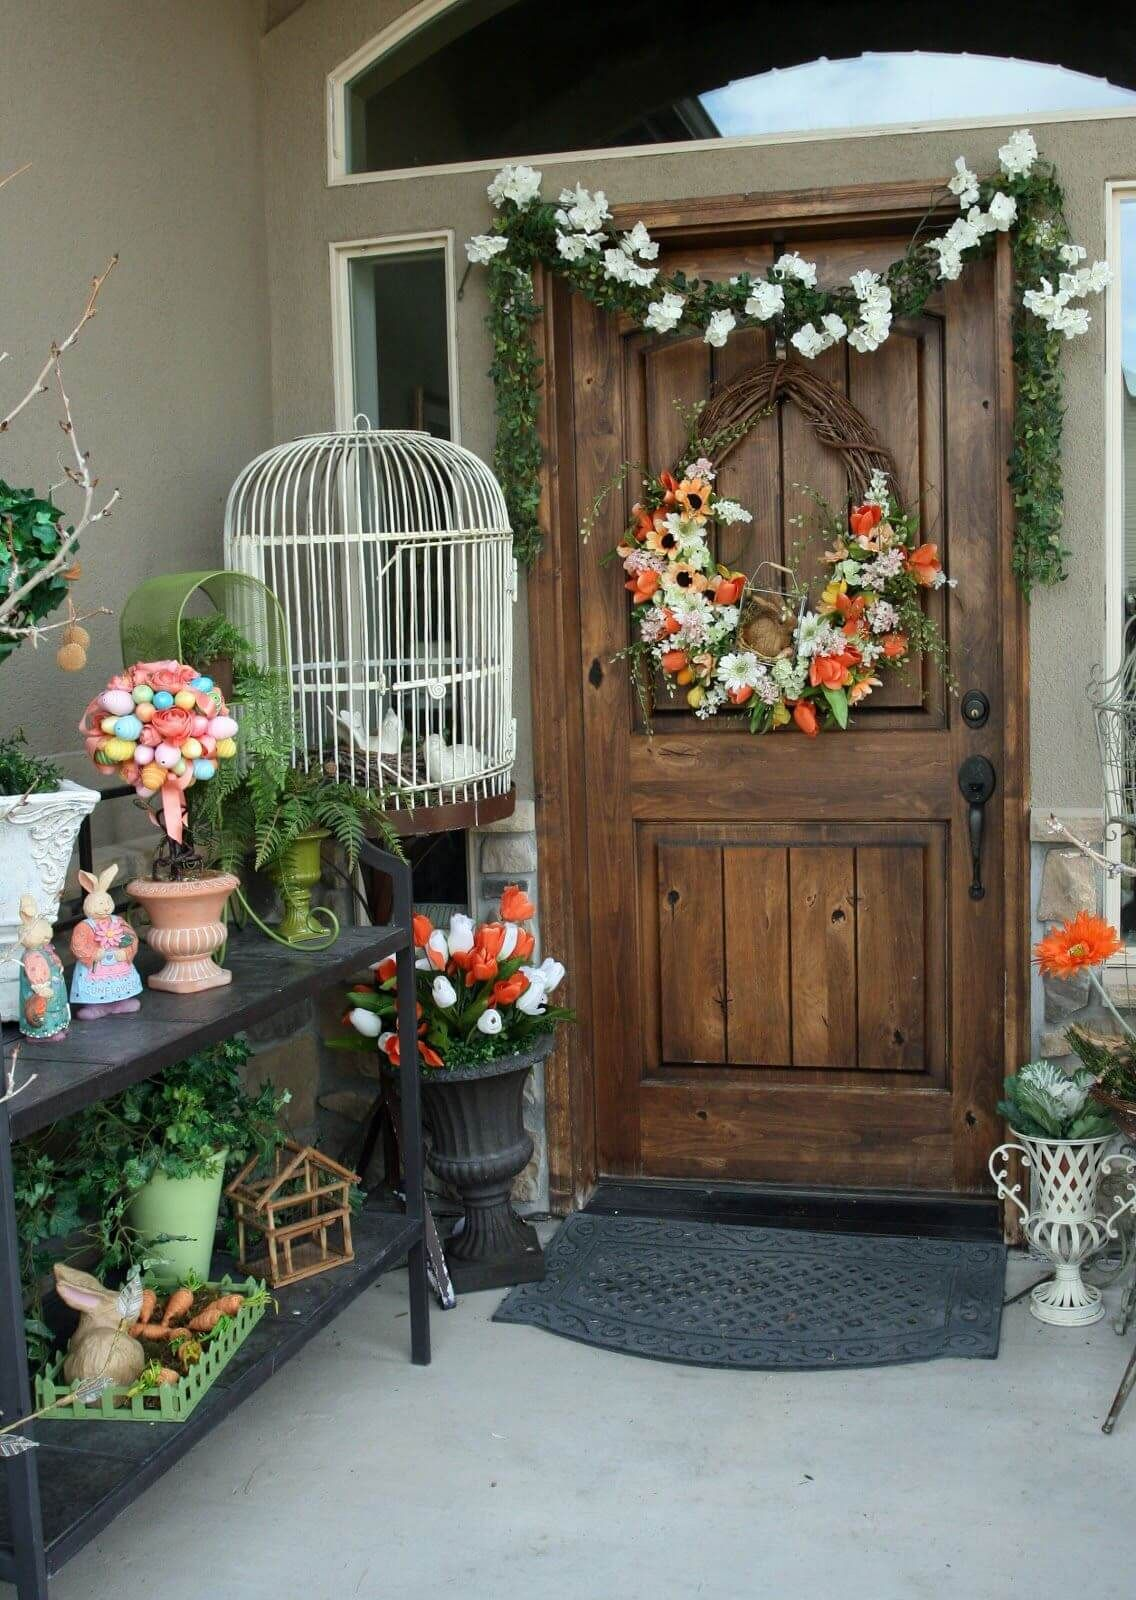 23 Fun And Adorable Easter Porch Decor Ideas Decorating The Entire